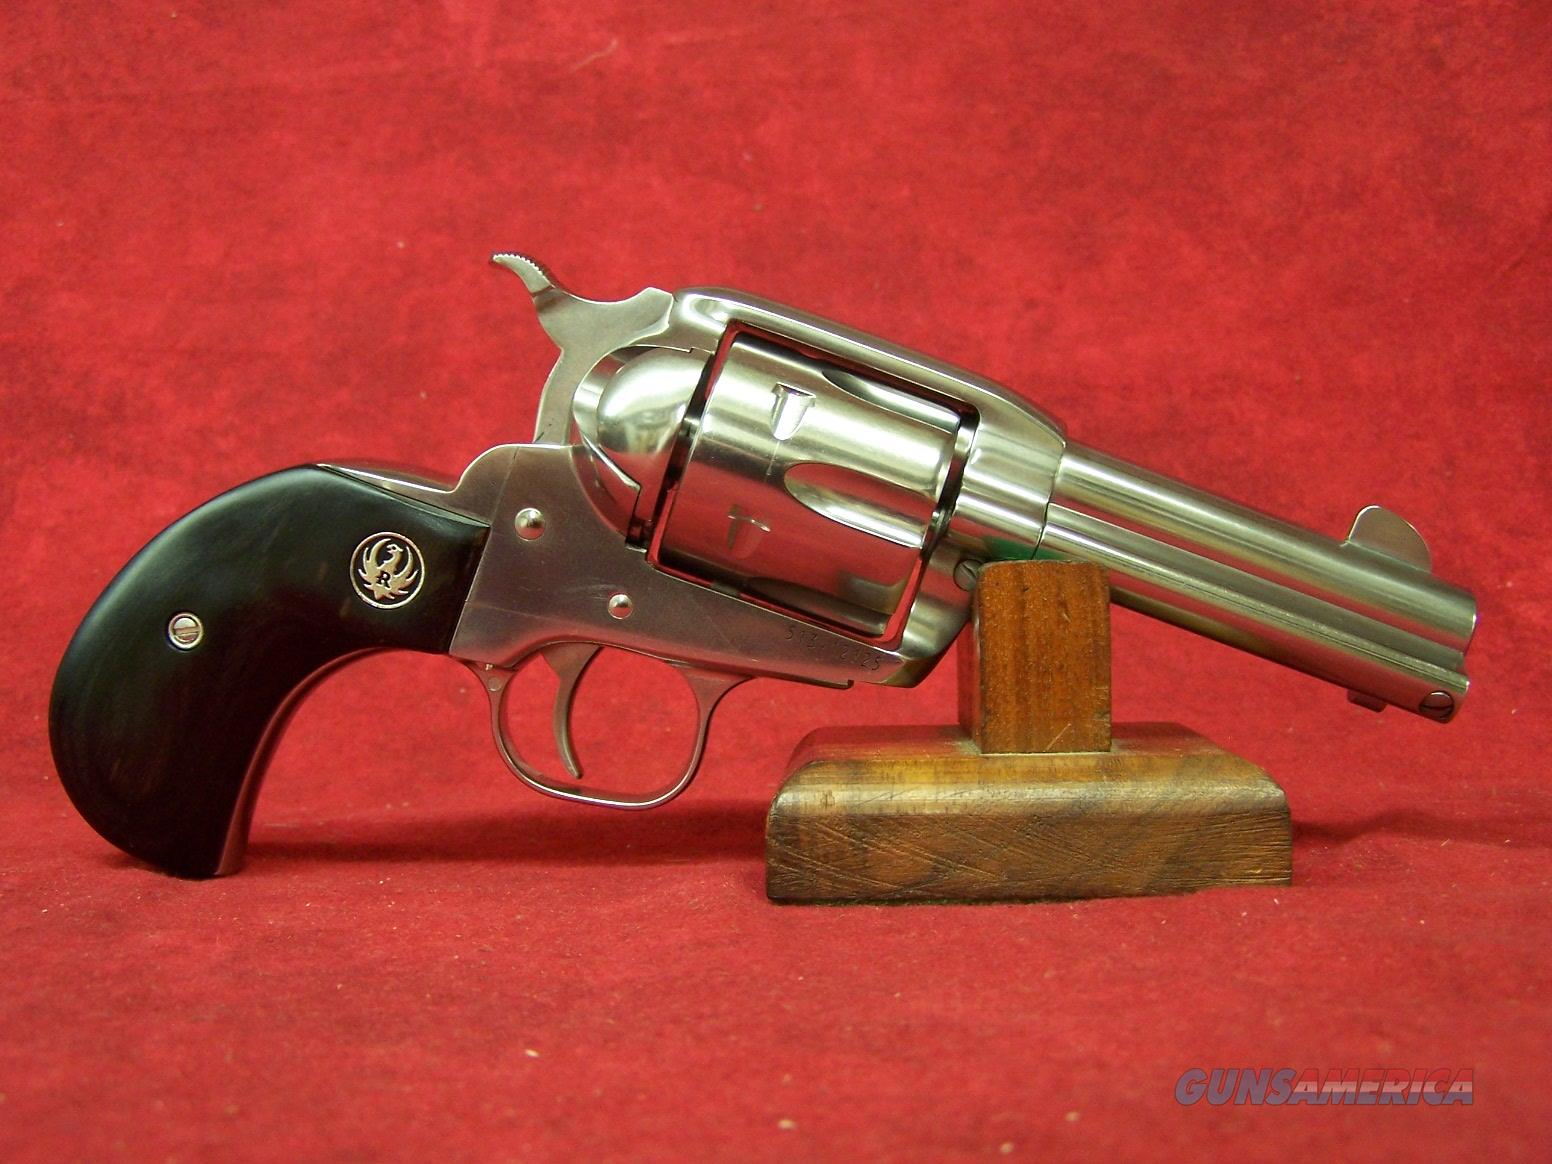 "RUGER VAQUERO 357 MAG 3.75"" STAINLESS BIRDSHEAD GRIP(05162)  Guns > Pistols > Ruger Single Action Revolvers > Cowboy Action"